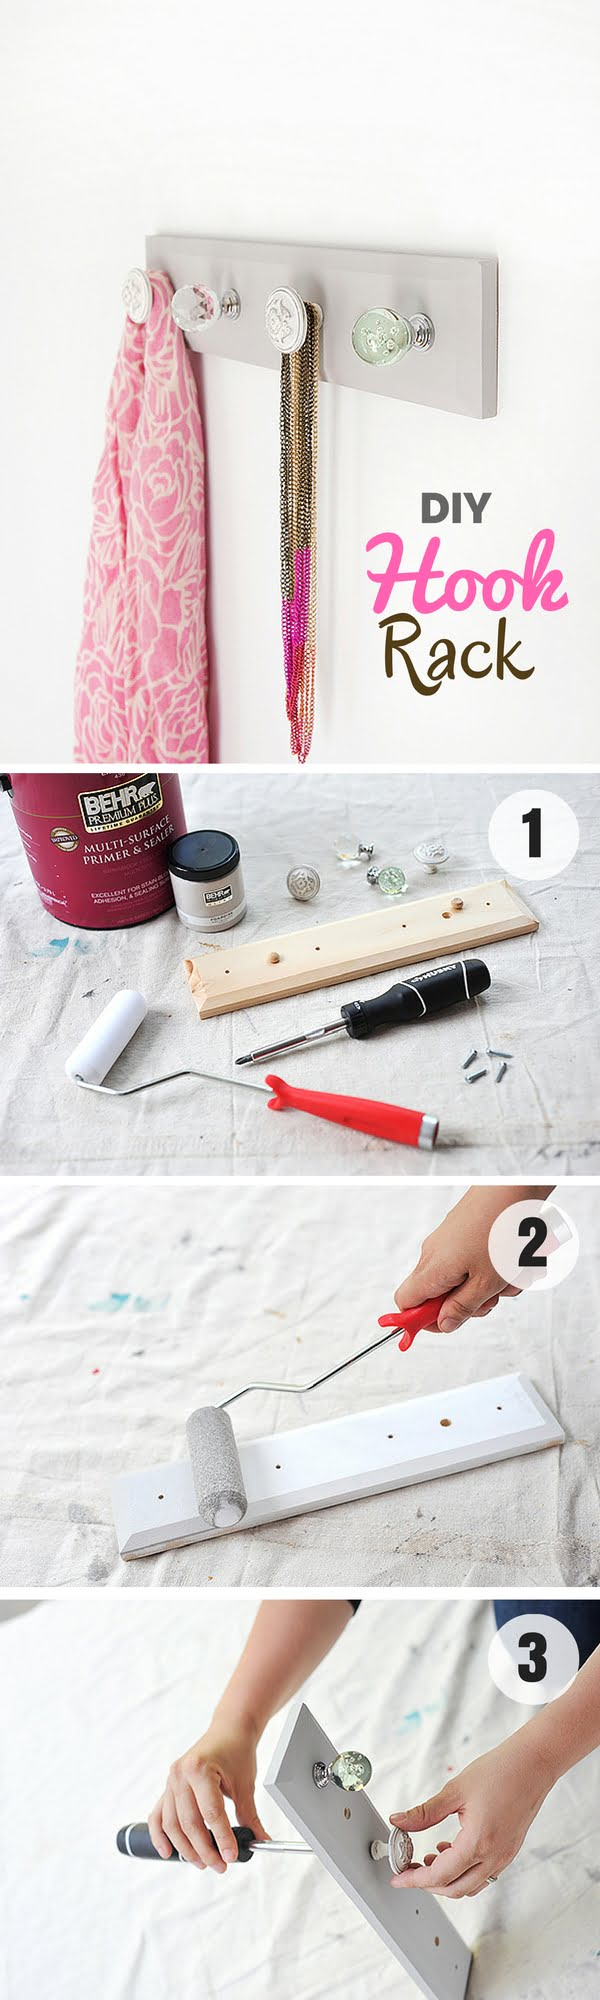 16 Beautiful DIY Bedroom Decor Ideas That Will Inspire You - Check out how to make an easy DIY Hook Rack for stylish bedroom decor